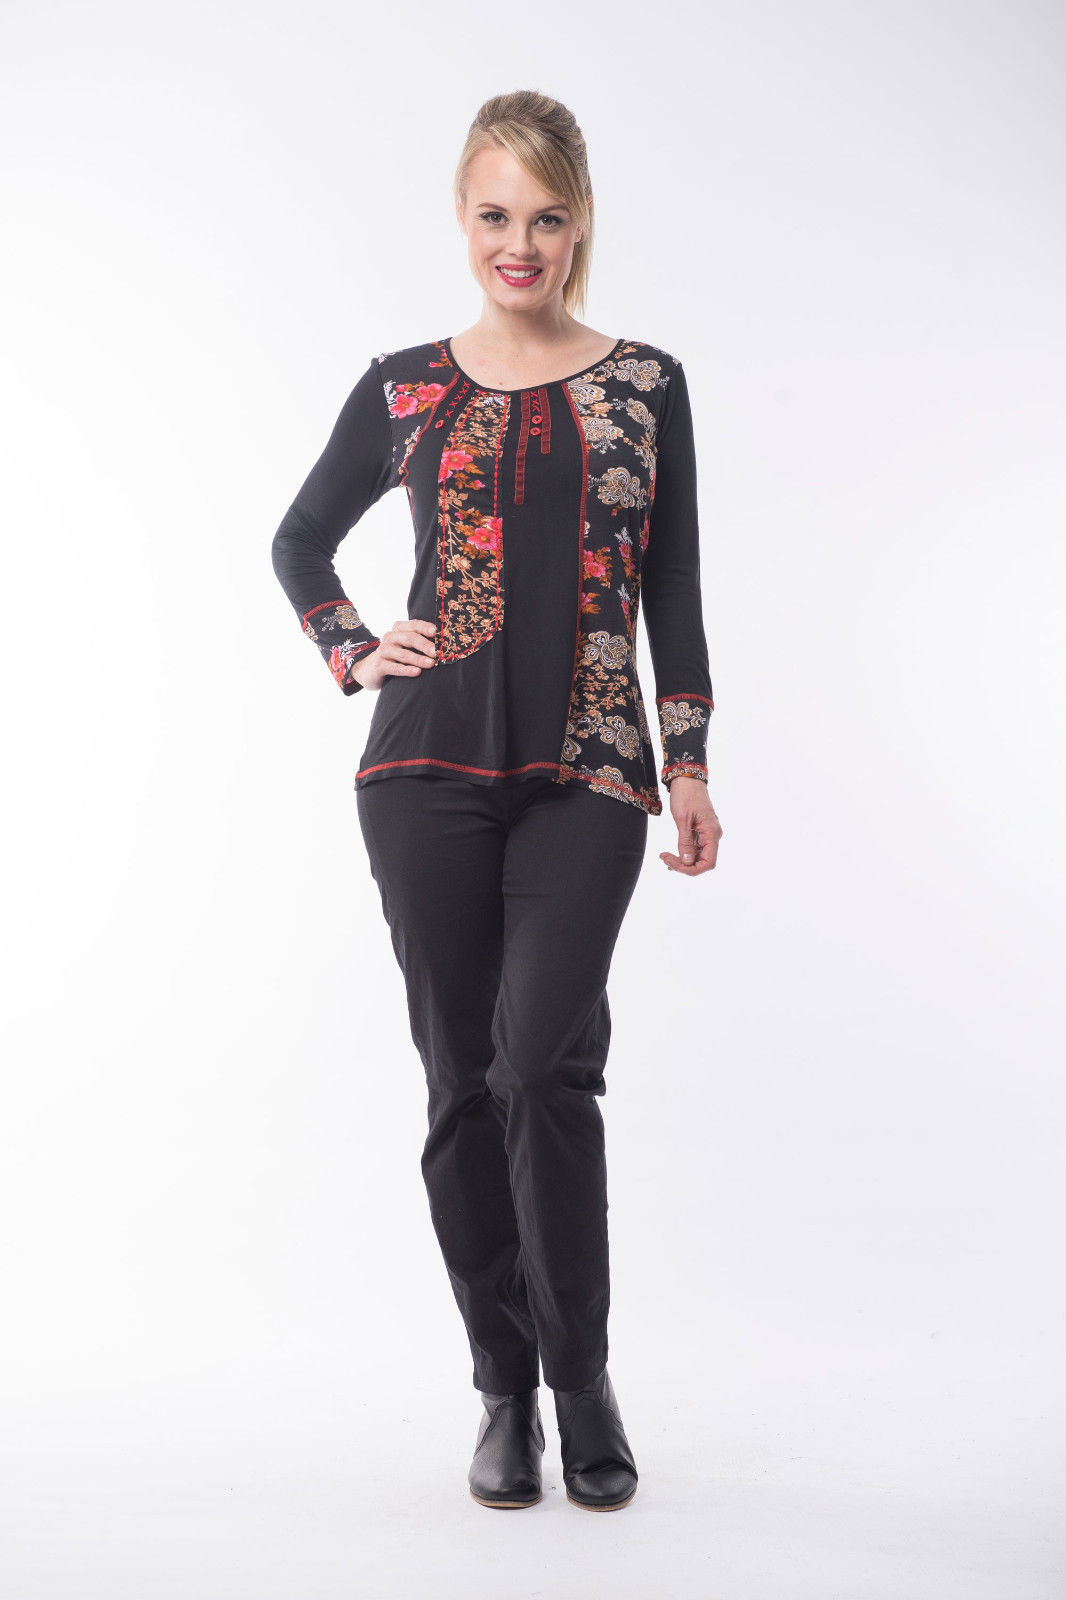 Boccini-Long-Sleeved-Ladies-Floral-T-Shirt-Top-by-Orientique-Black-Orange-Pink-382026884653